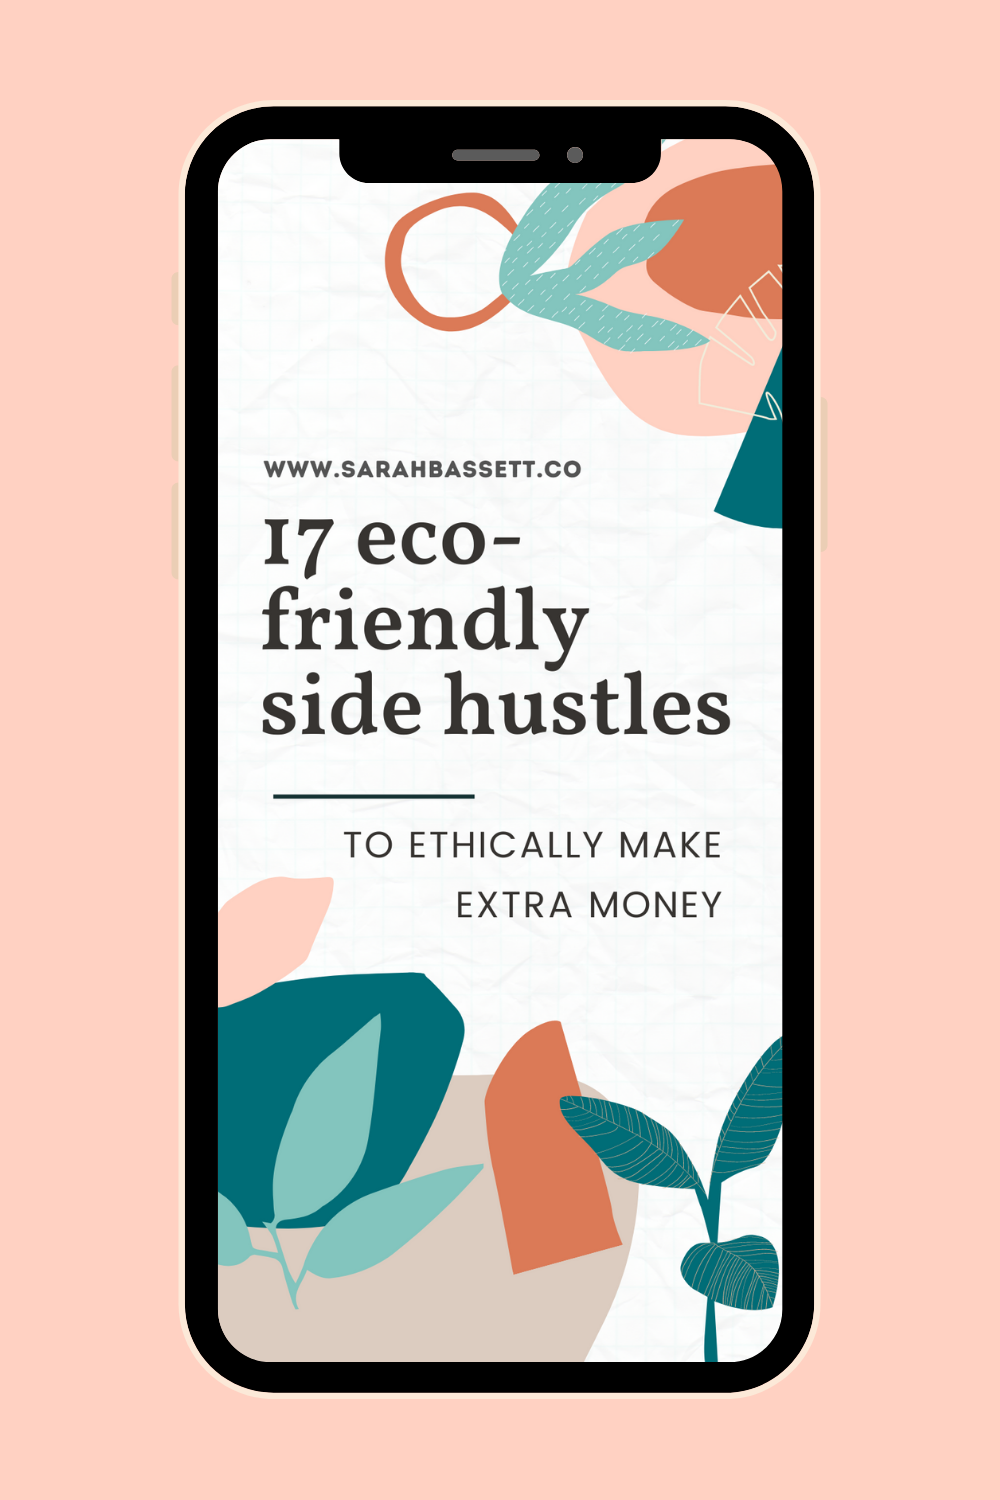 free download with 17 eco friendly side hustles to ethically make money